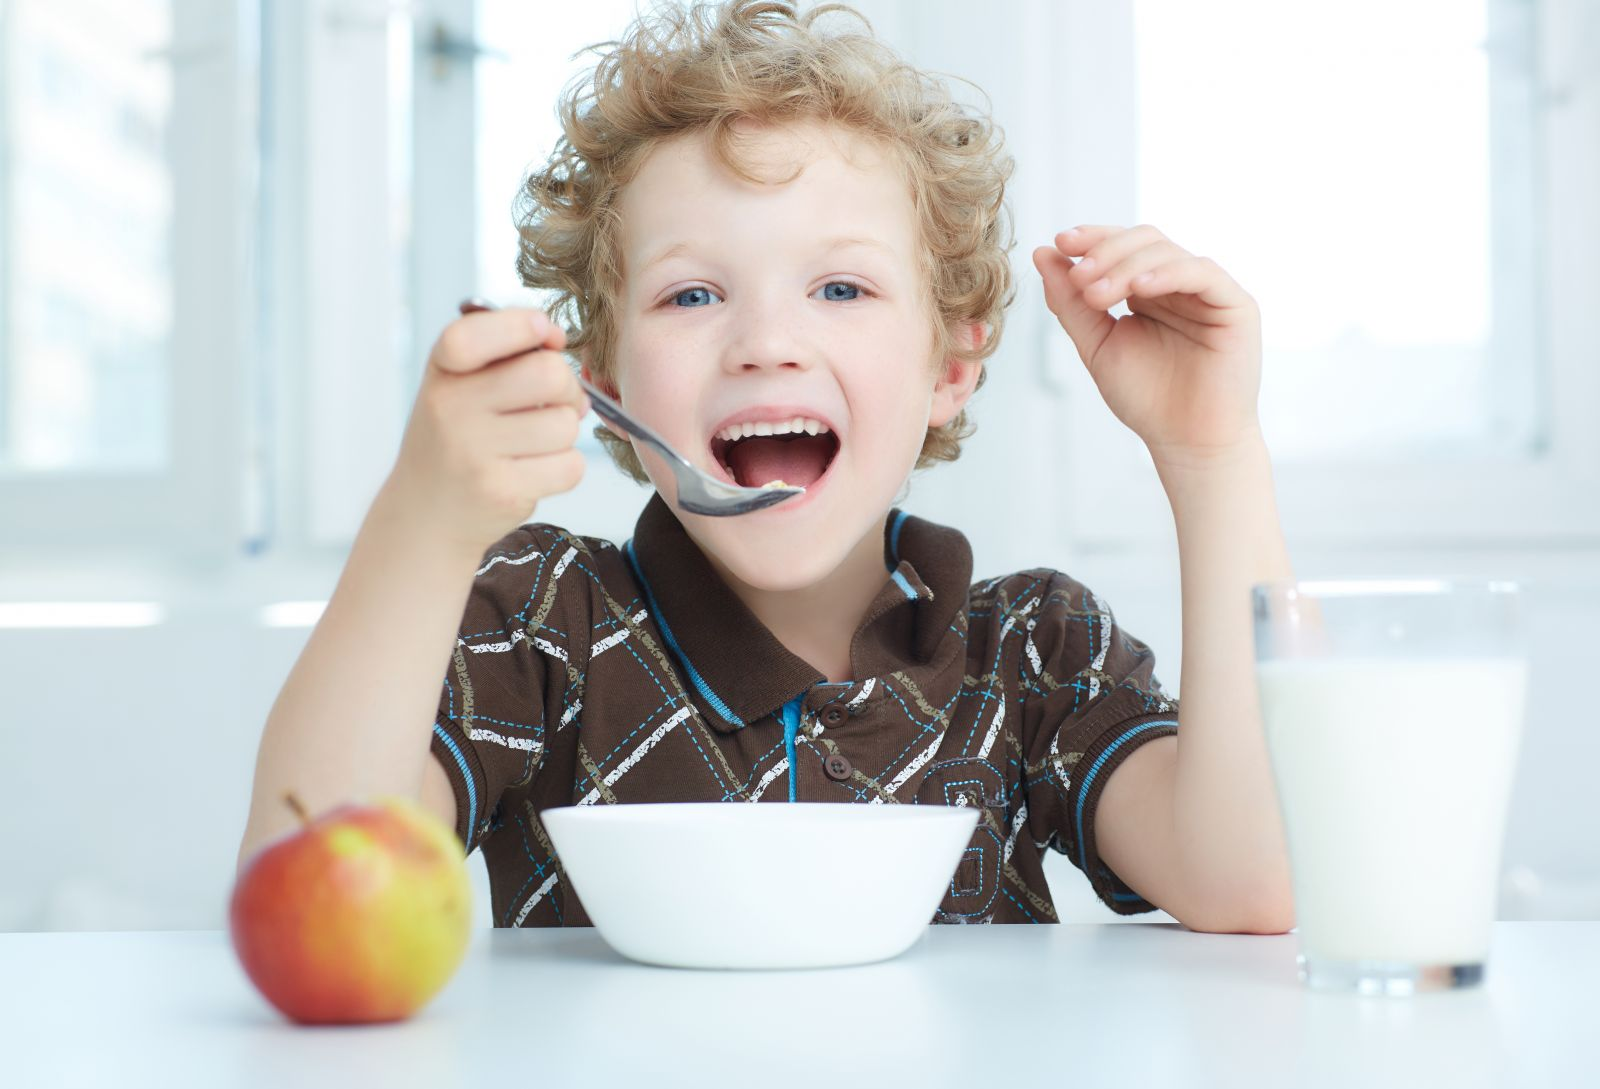 A young boy enjoying breakfast